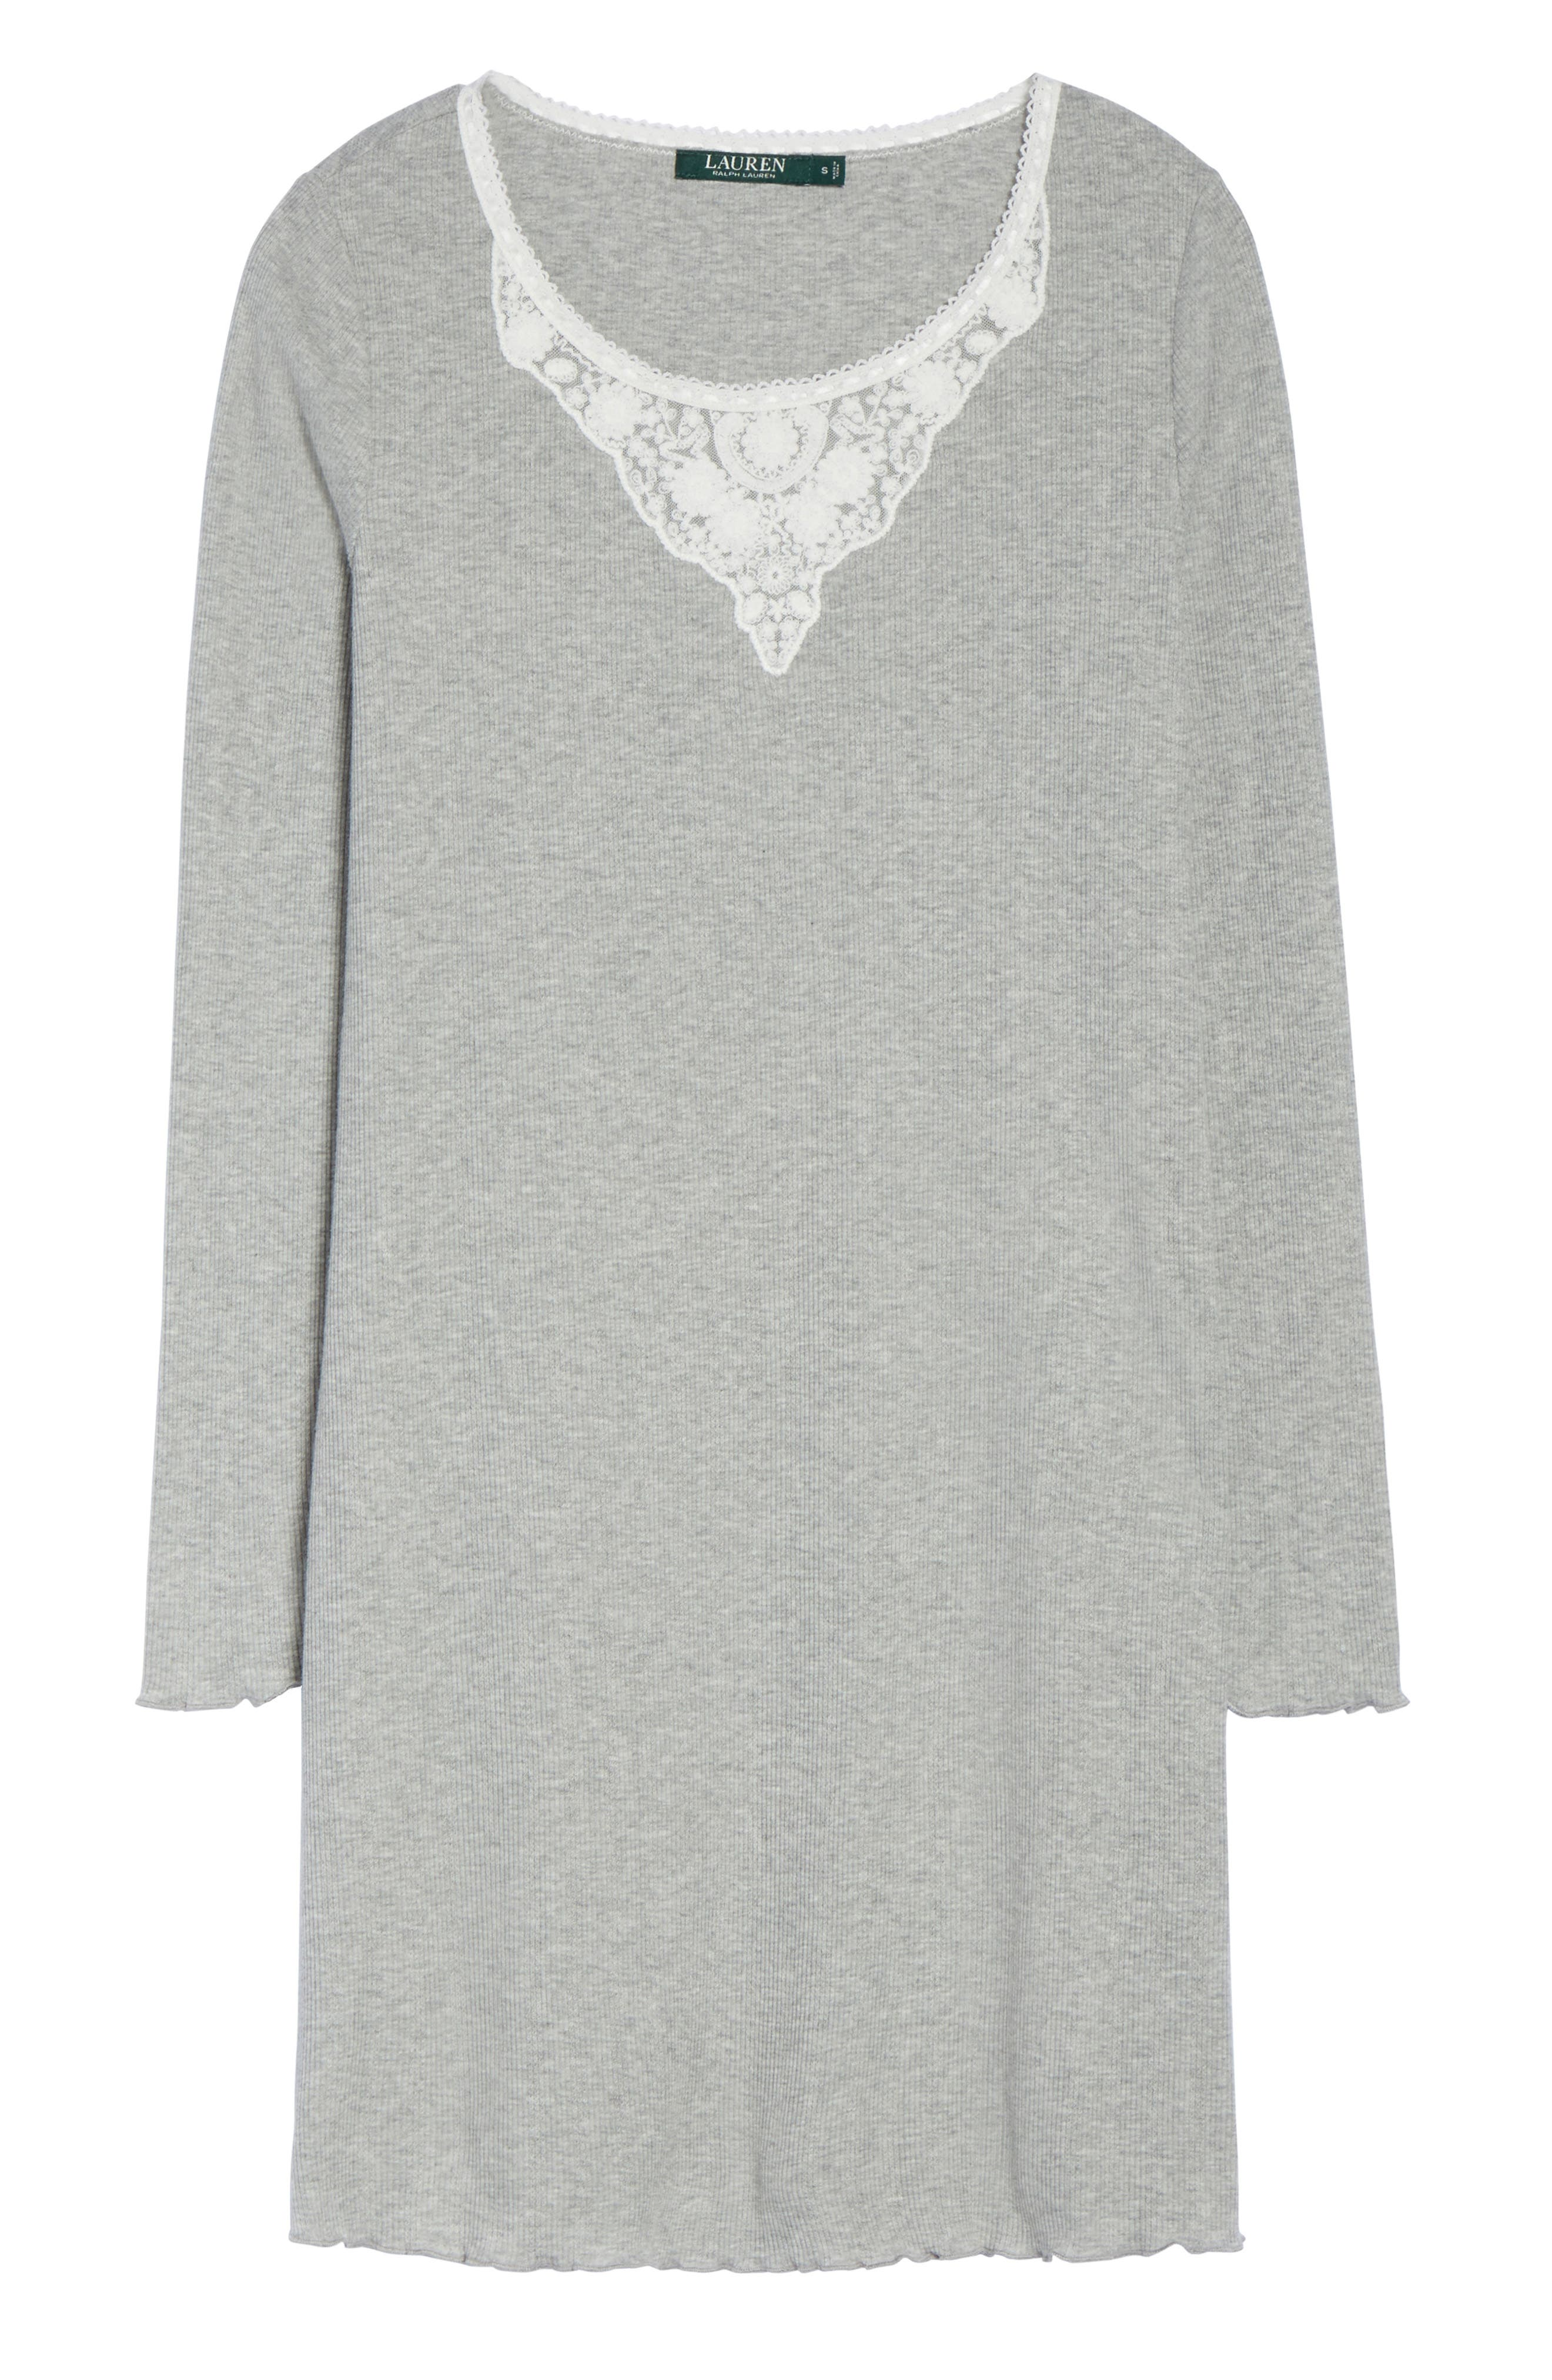 Lace Neck Sleep Shirt,                             Alternate thumbnail 4, color,                             Grey Heather